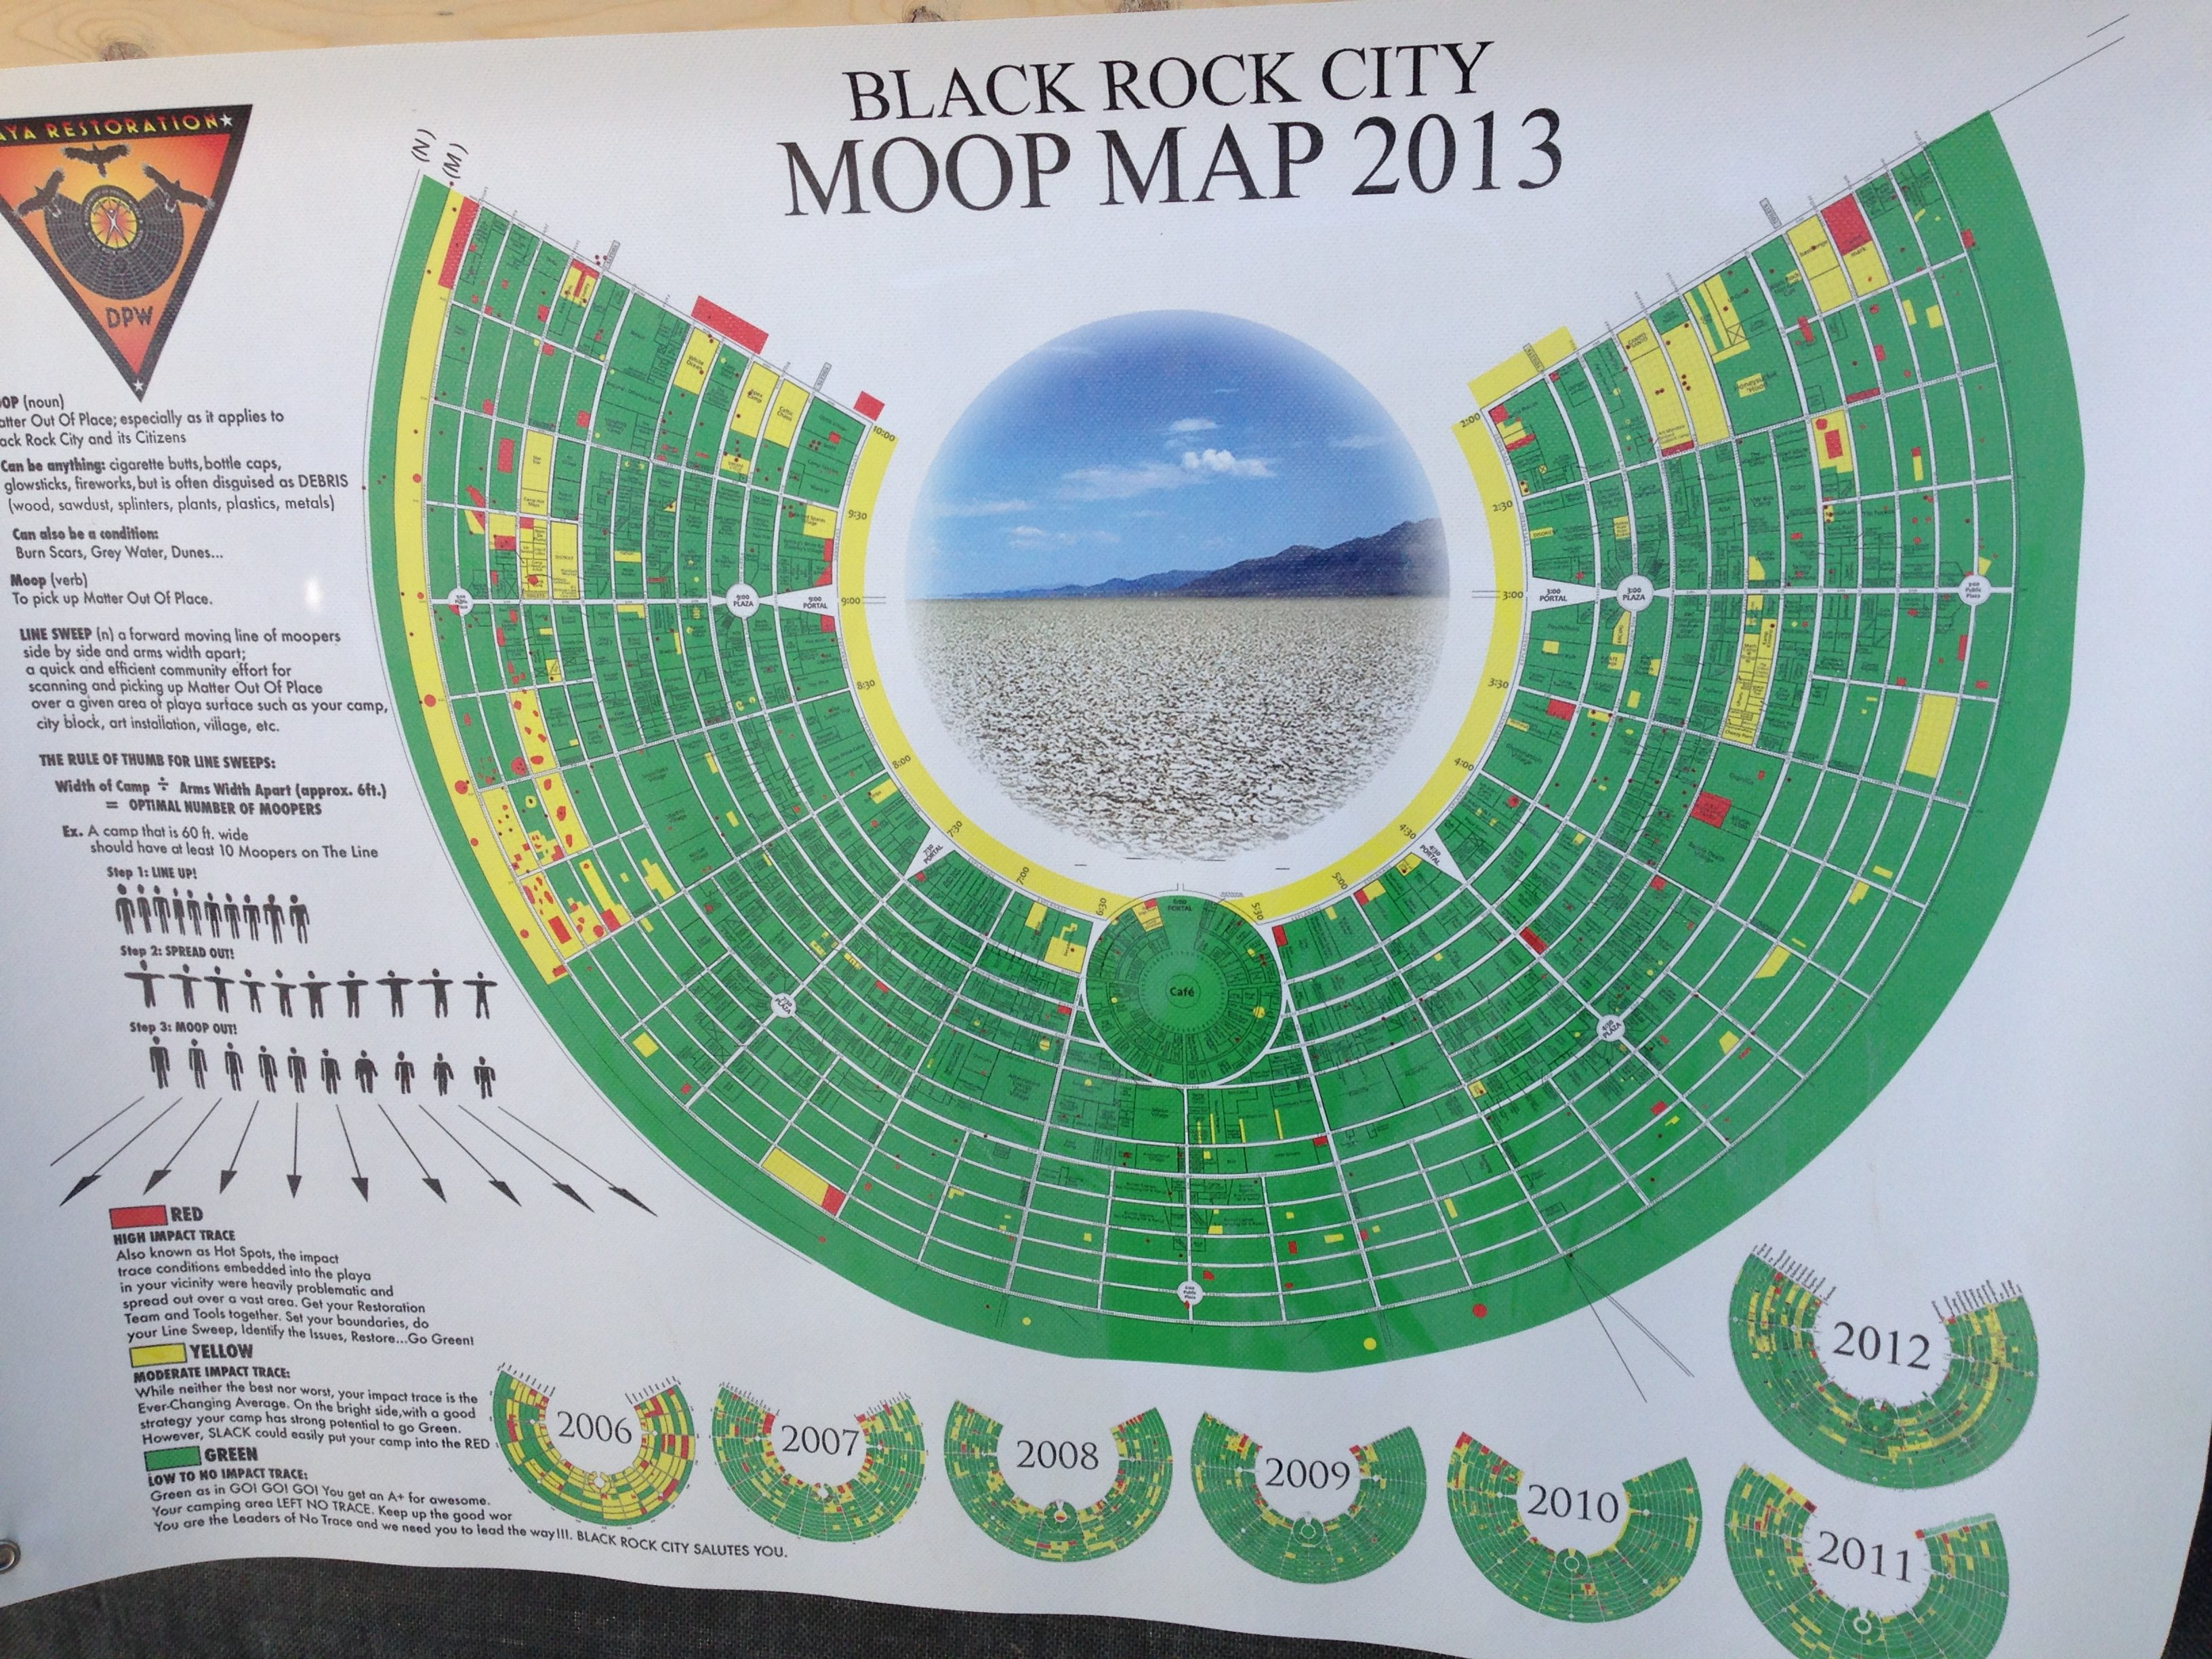 Moop Map 2013: This was our first year, and the 'norm' that we wanted to improve on.